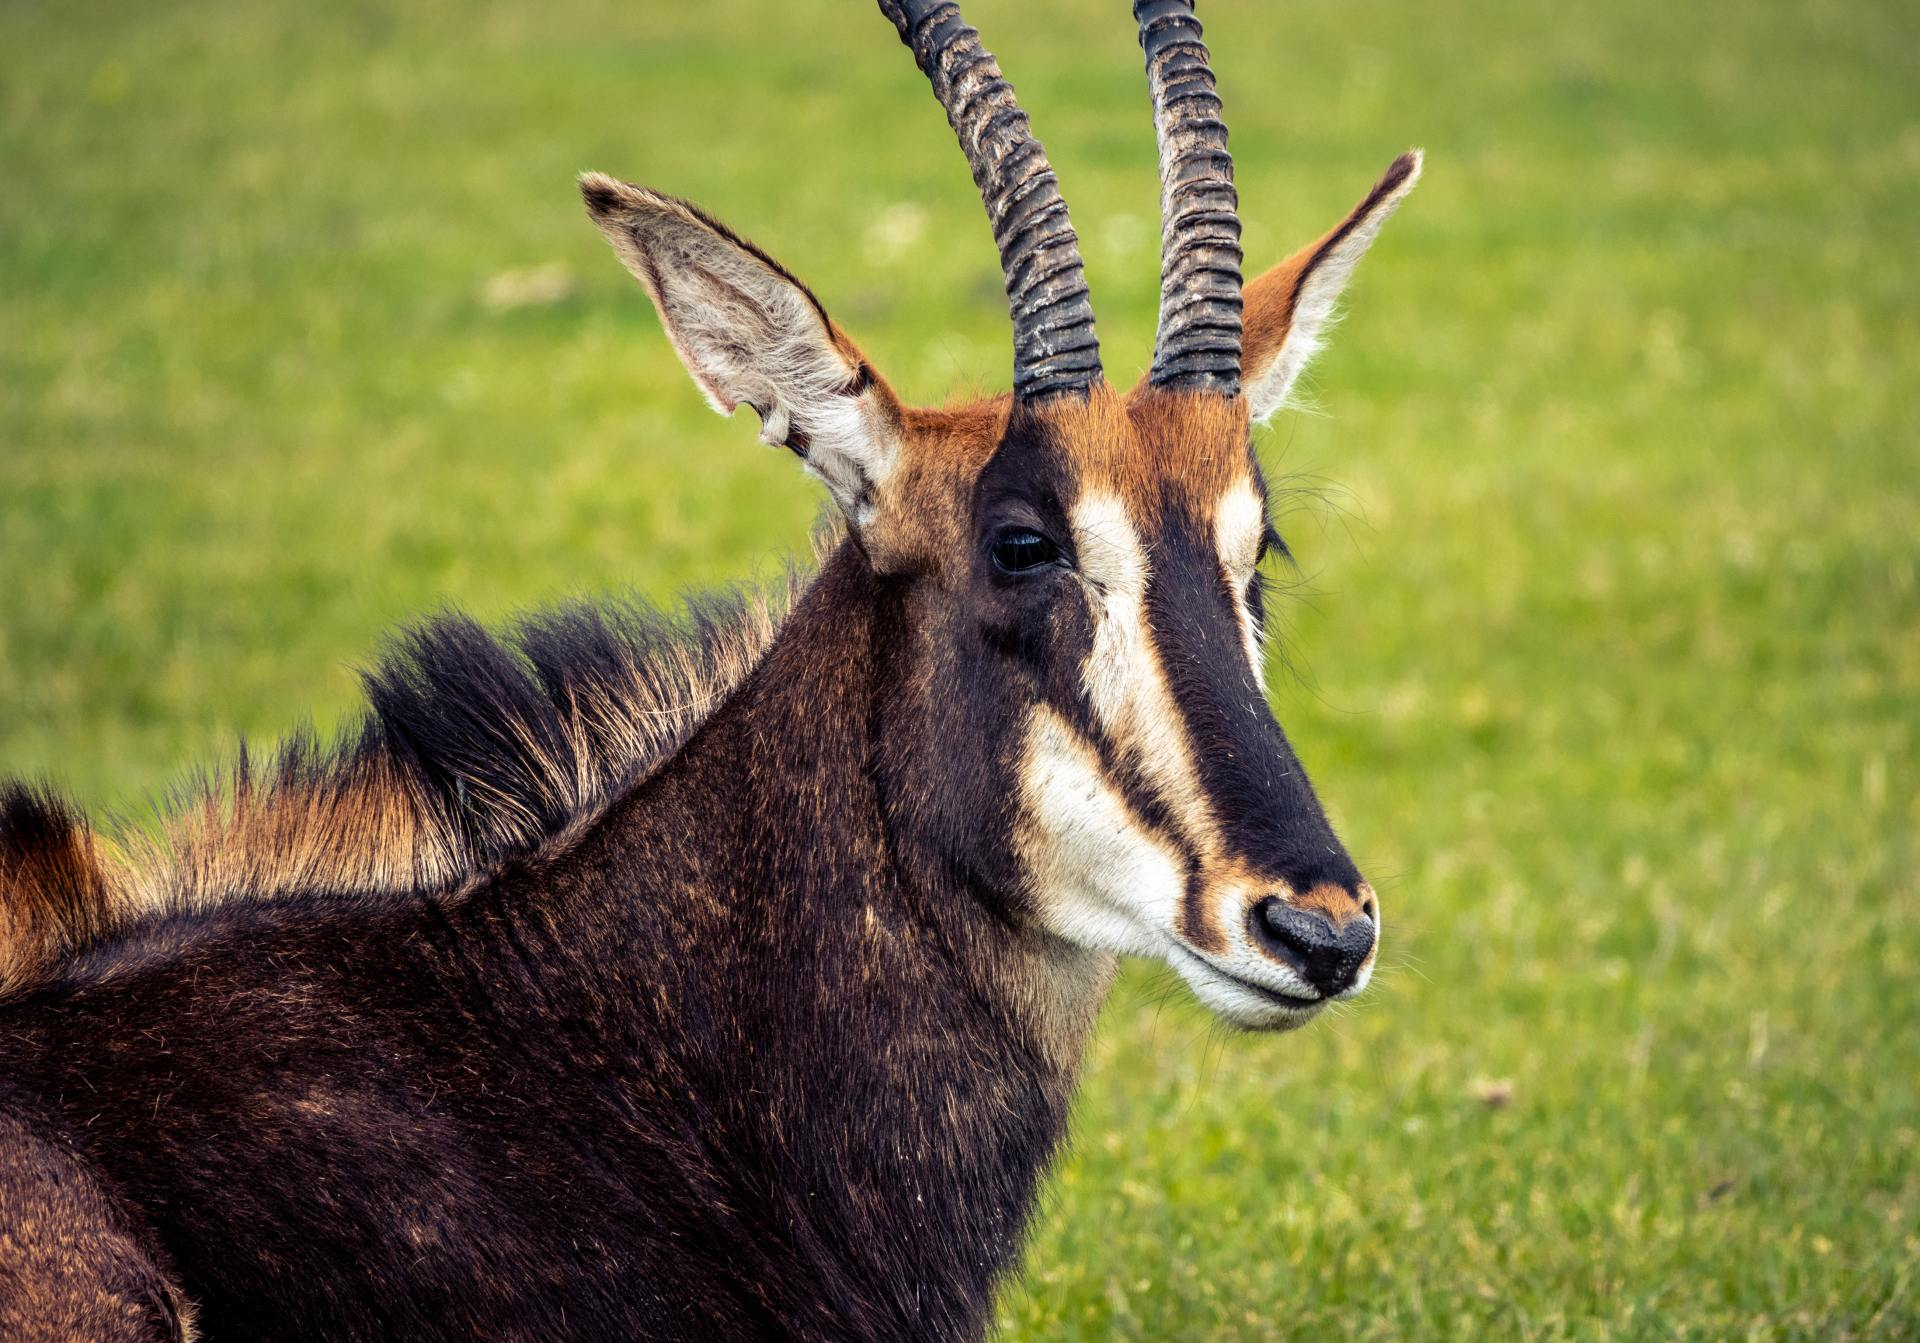 The roan antelope (Hippotragus equinus) is a savanna antelope. The Roan Antelope is found in West and Central Africa.